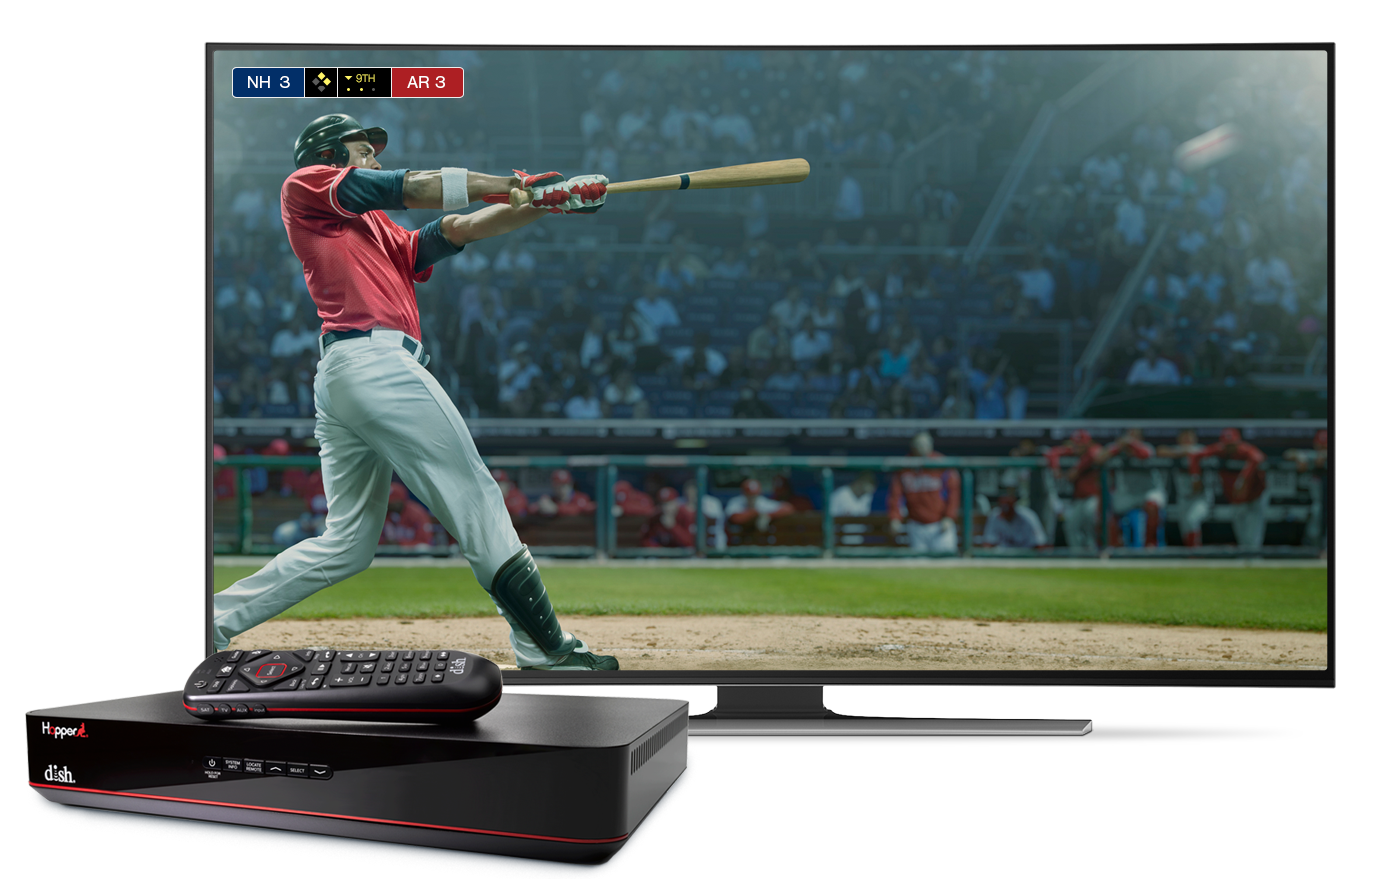 TV with image of baseball and a hopper dvr